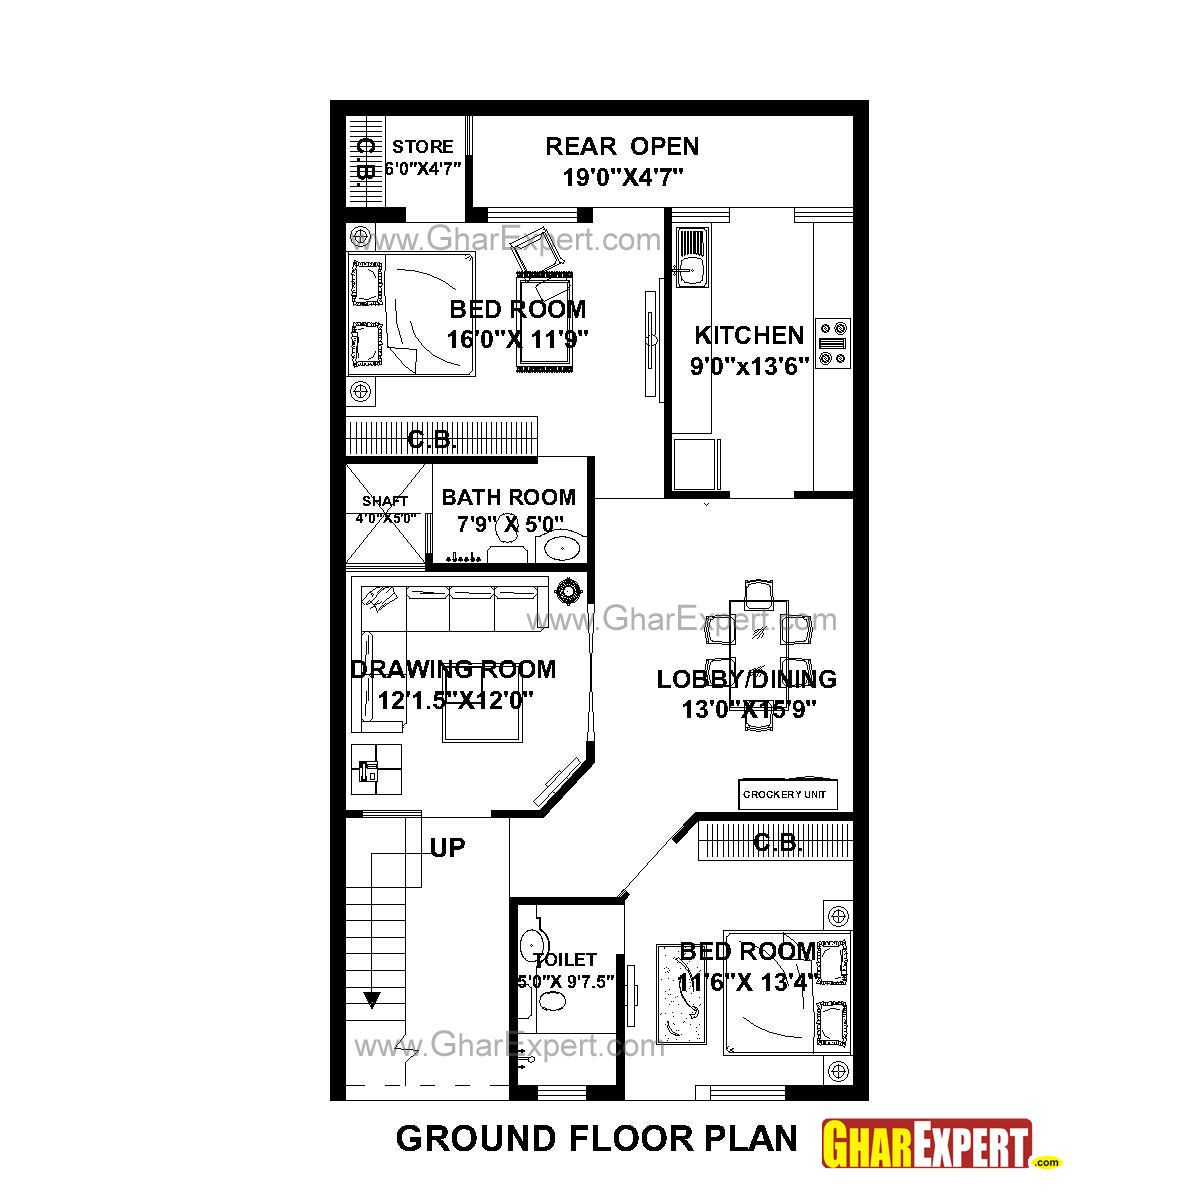 House Plan For 33 Feet By 40 Feet Plot Plot Size 147: House Plan For 27 Feet By 50 Feet Plot (Plot Size 150